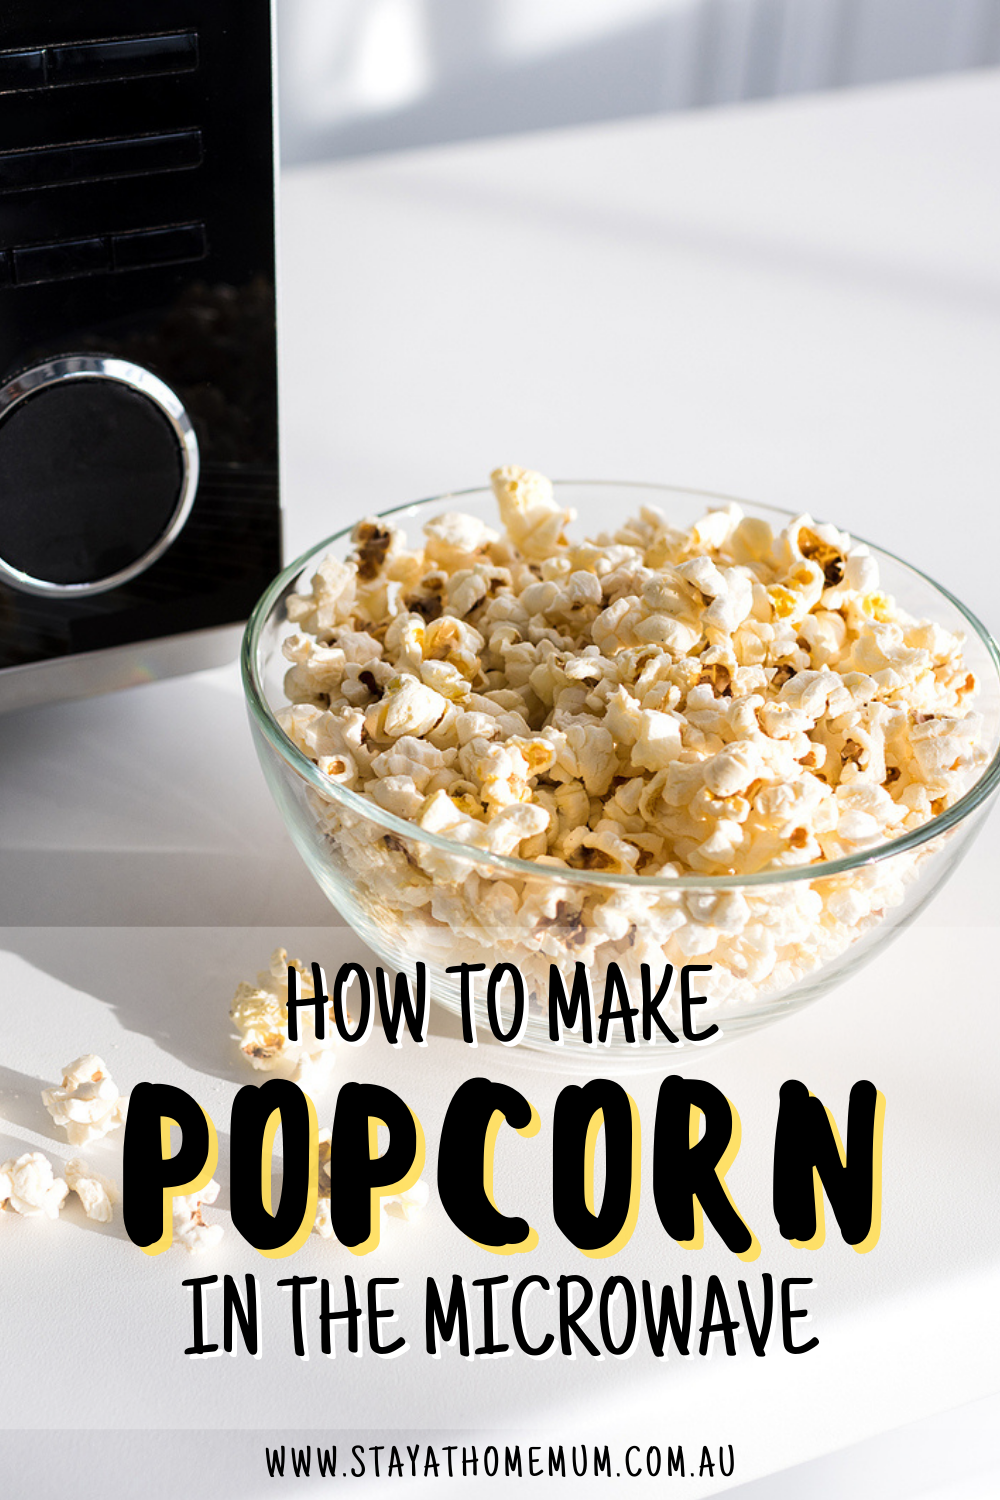 How to Make Popcorn in the Microwave | Stay at Home Mum